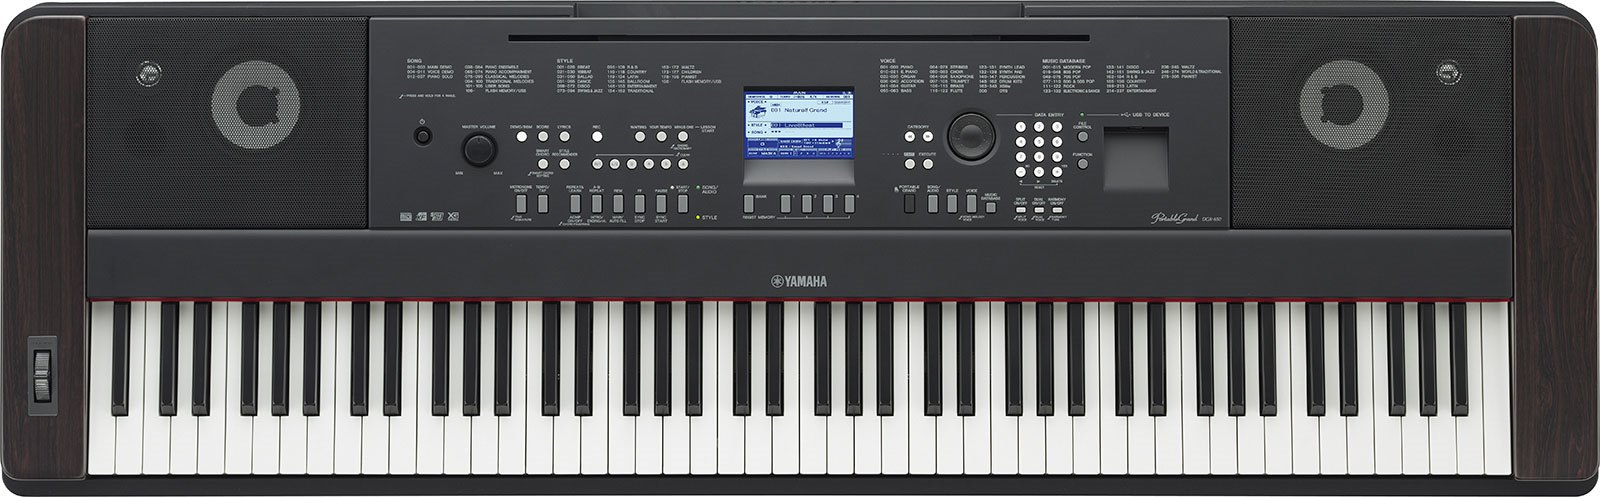 Yamaha Digital Piano DGX 650